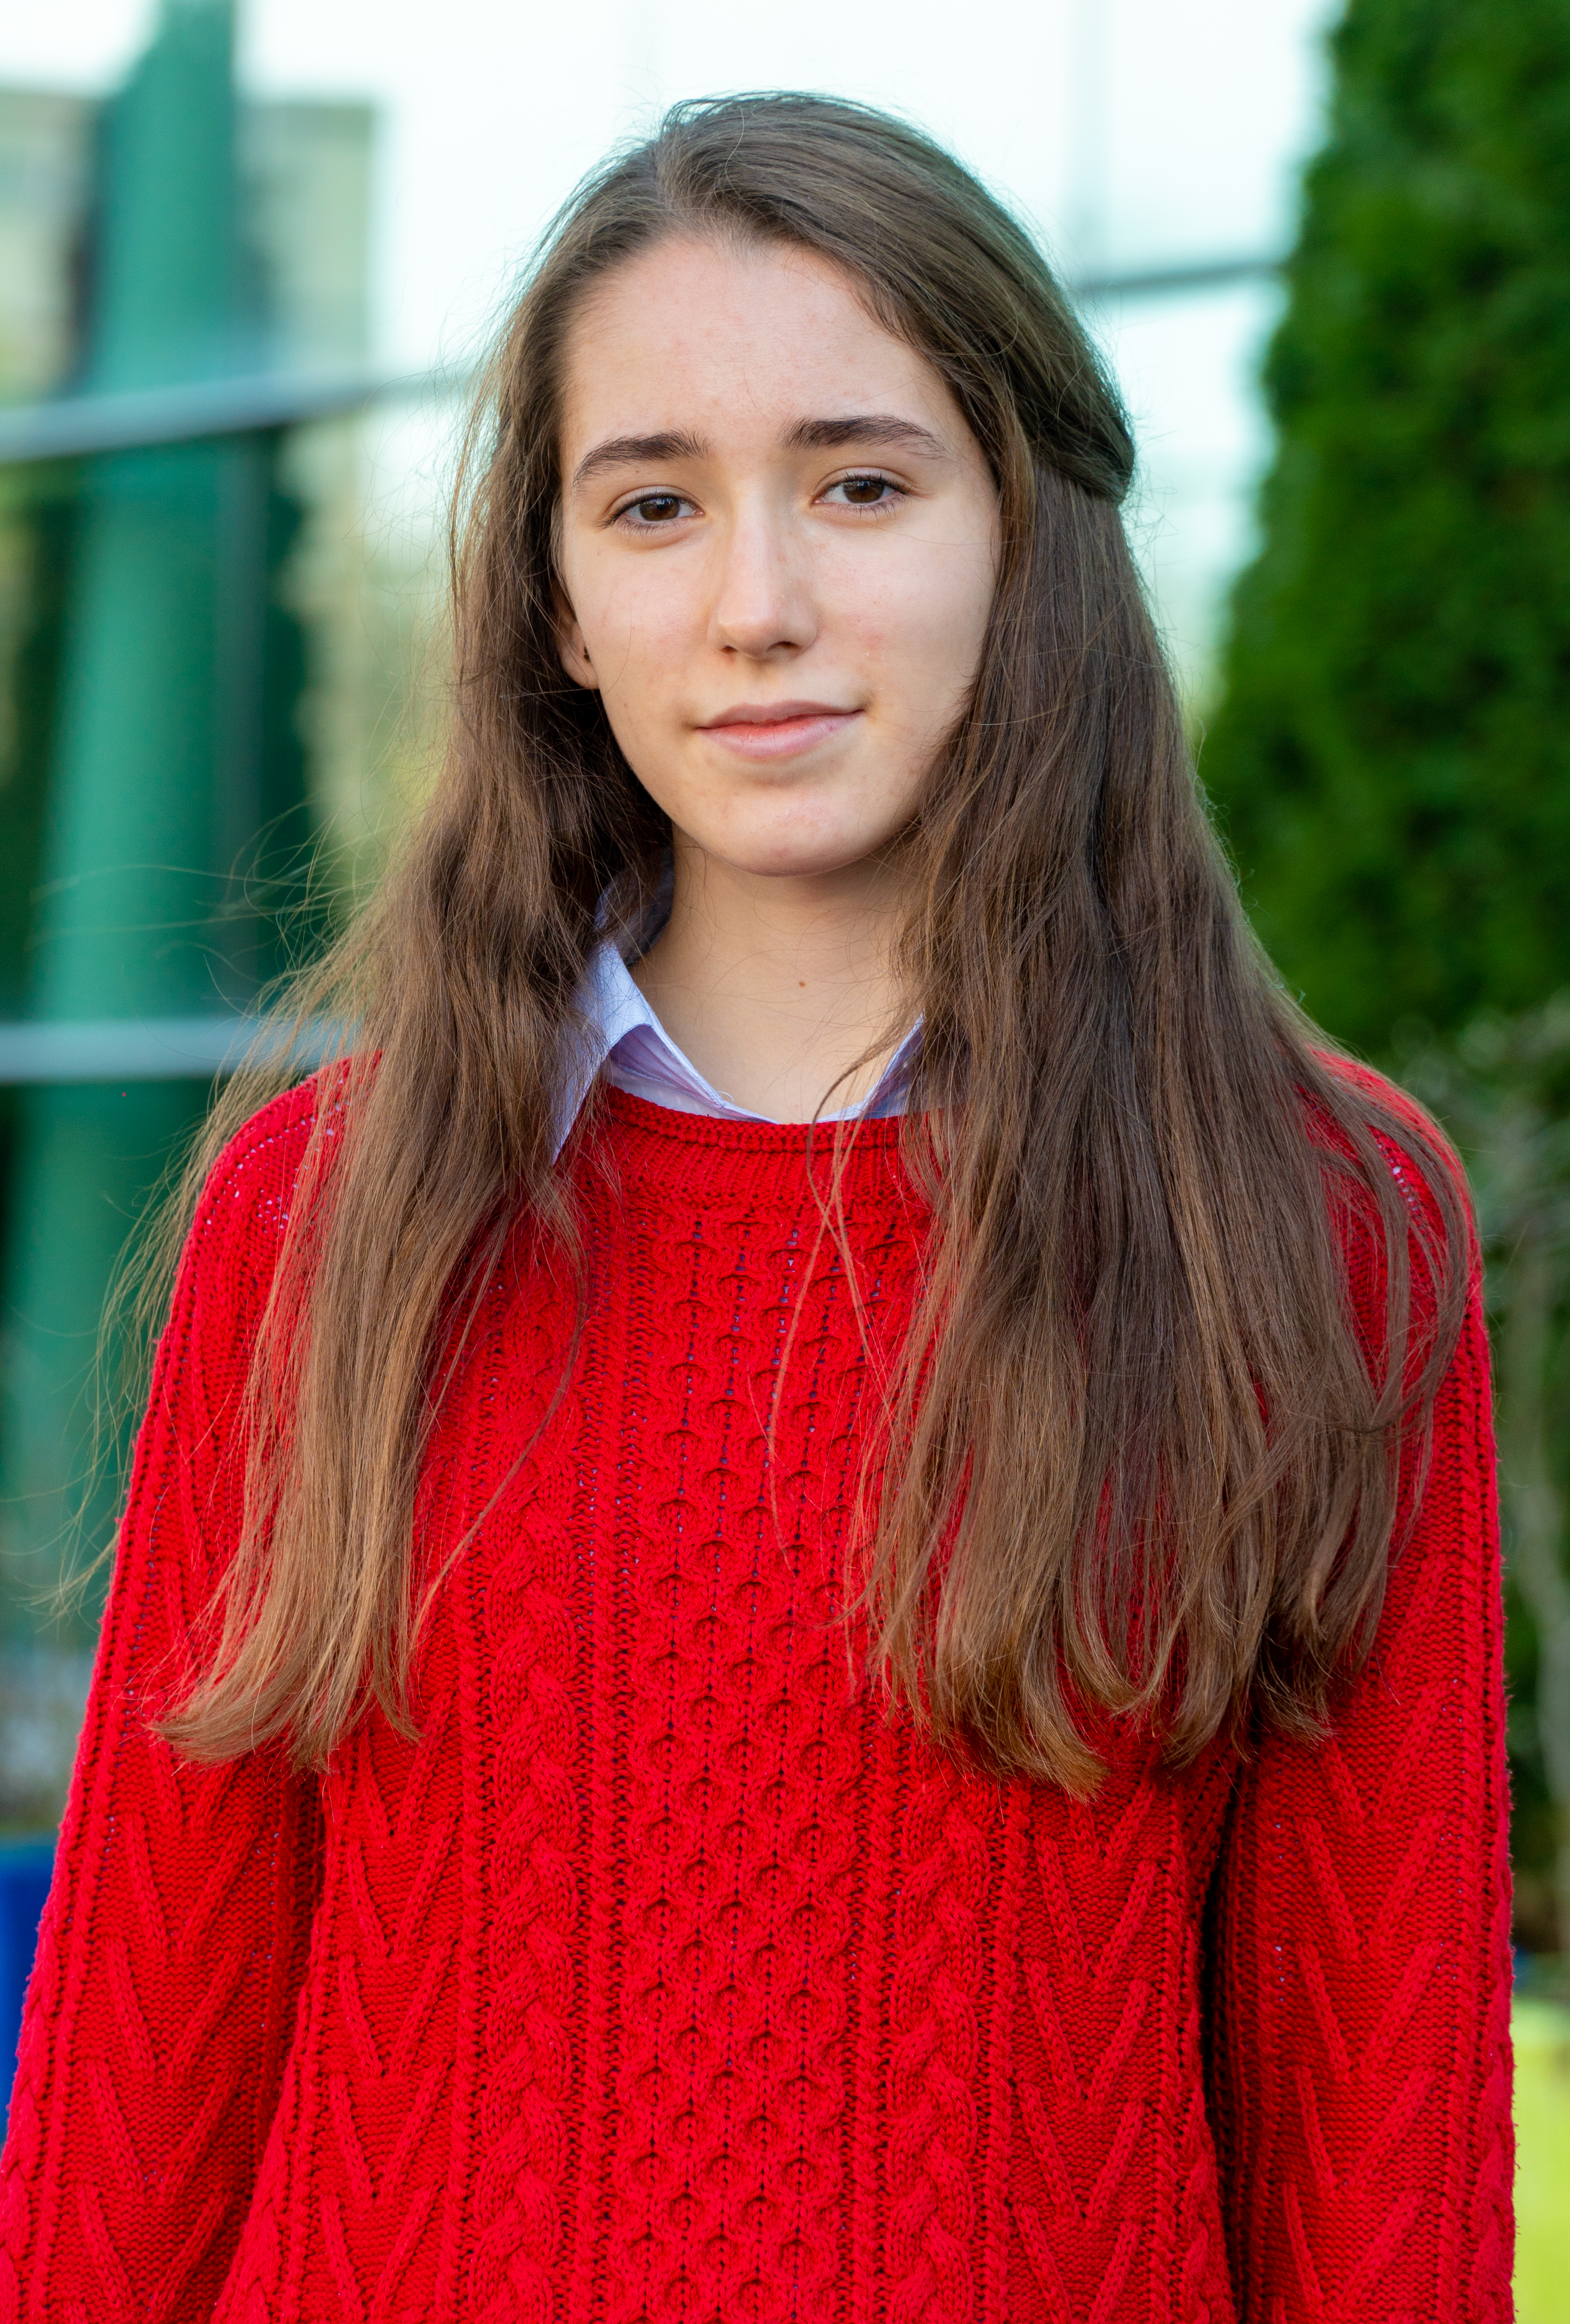 Andra A. Year 12 student, first year of International Baccalaureate Diploma Programme